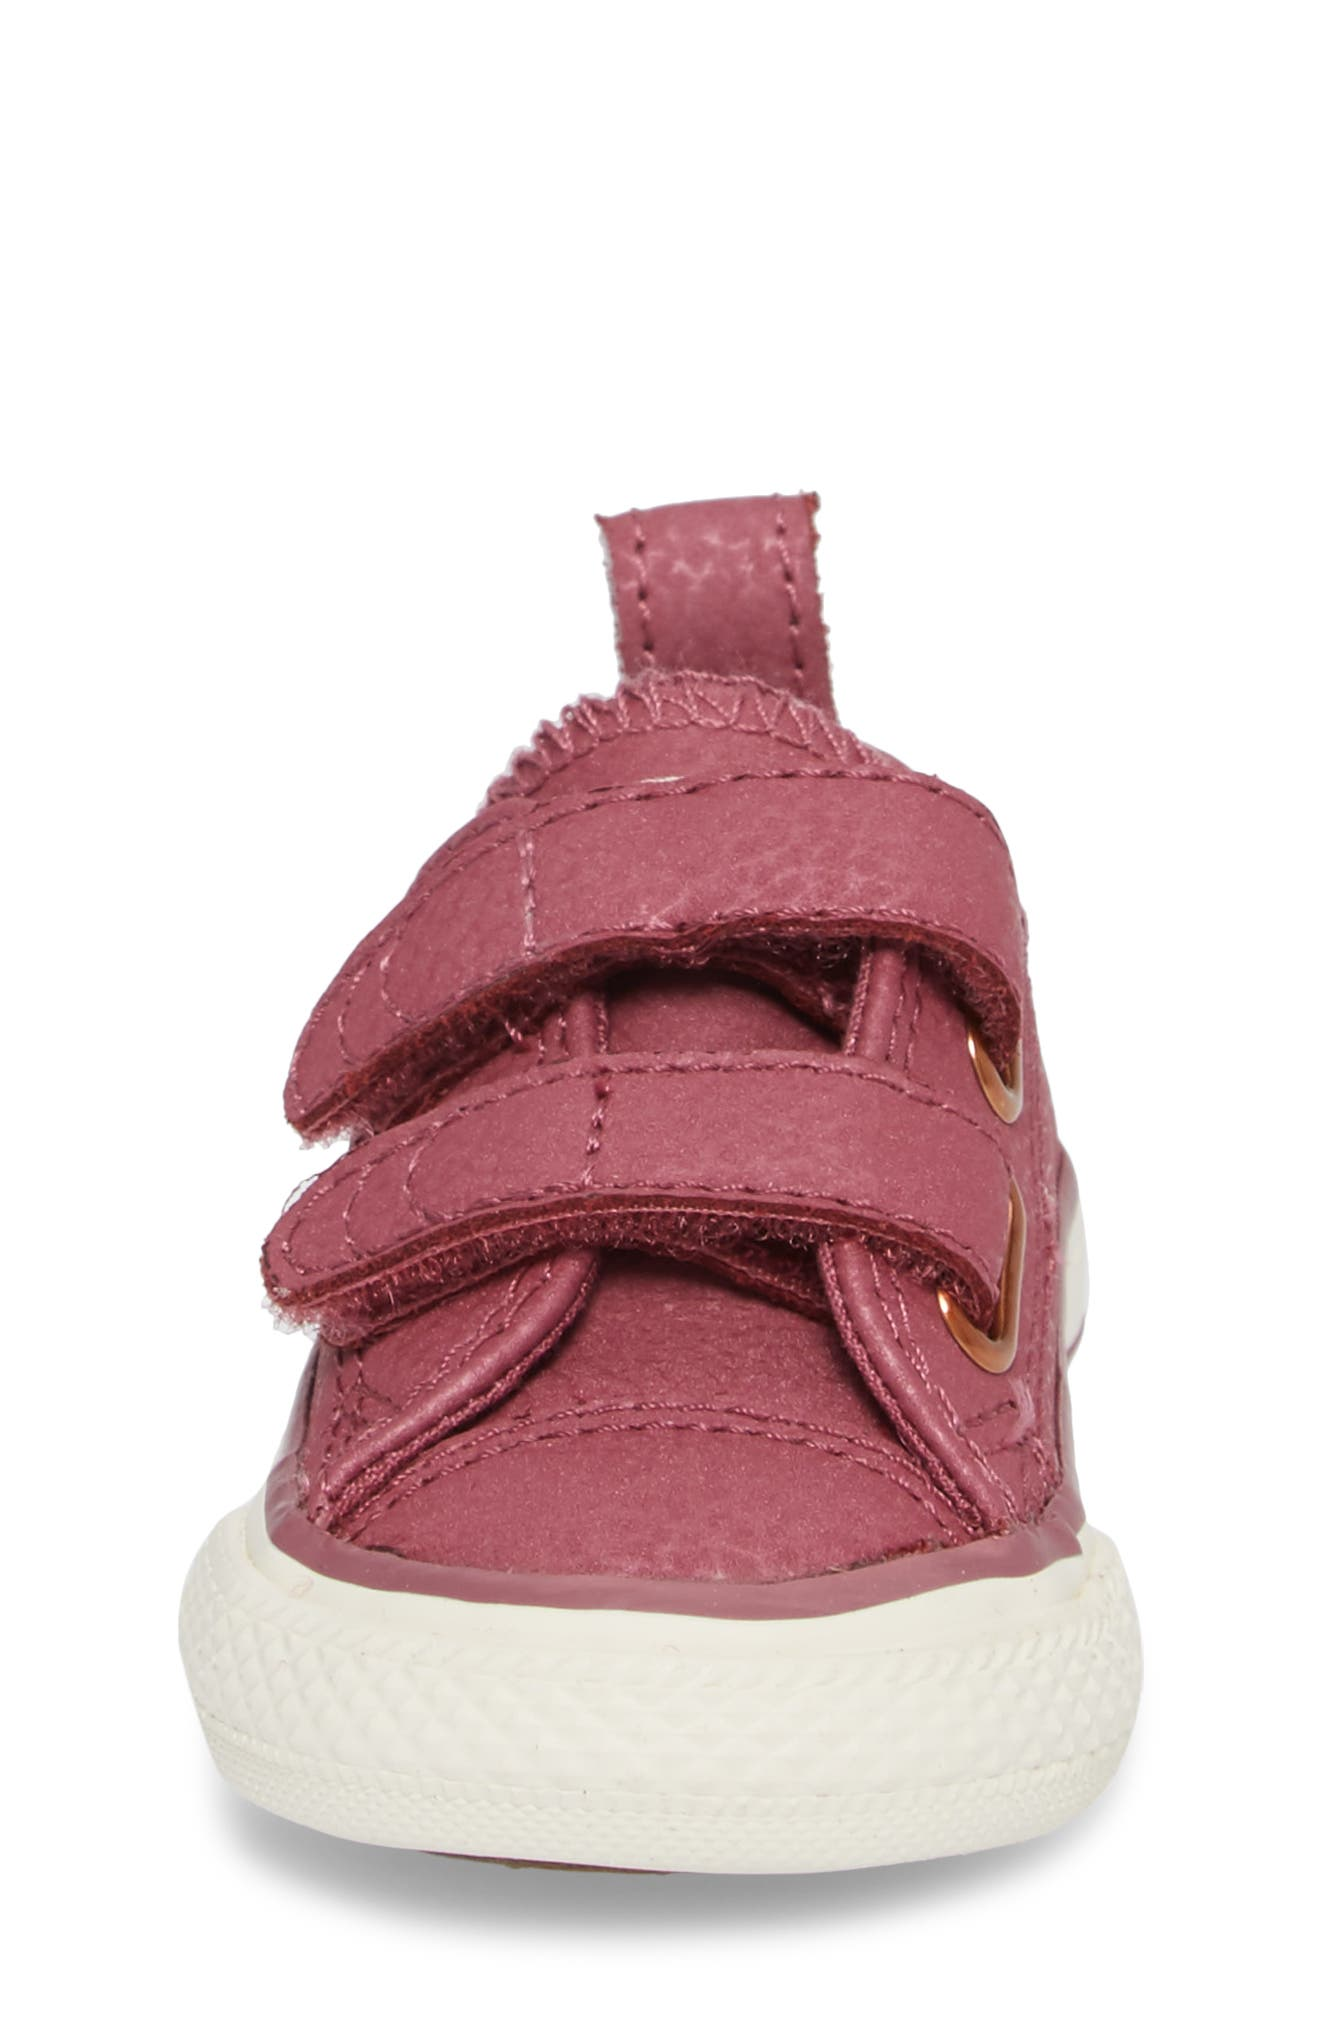 All Star<sup>®</sup> Fashion 2V Low Top Sneaker,                             Alternate thumbnail 4, color,                             607